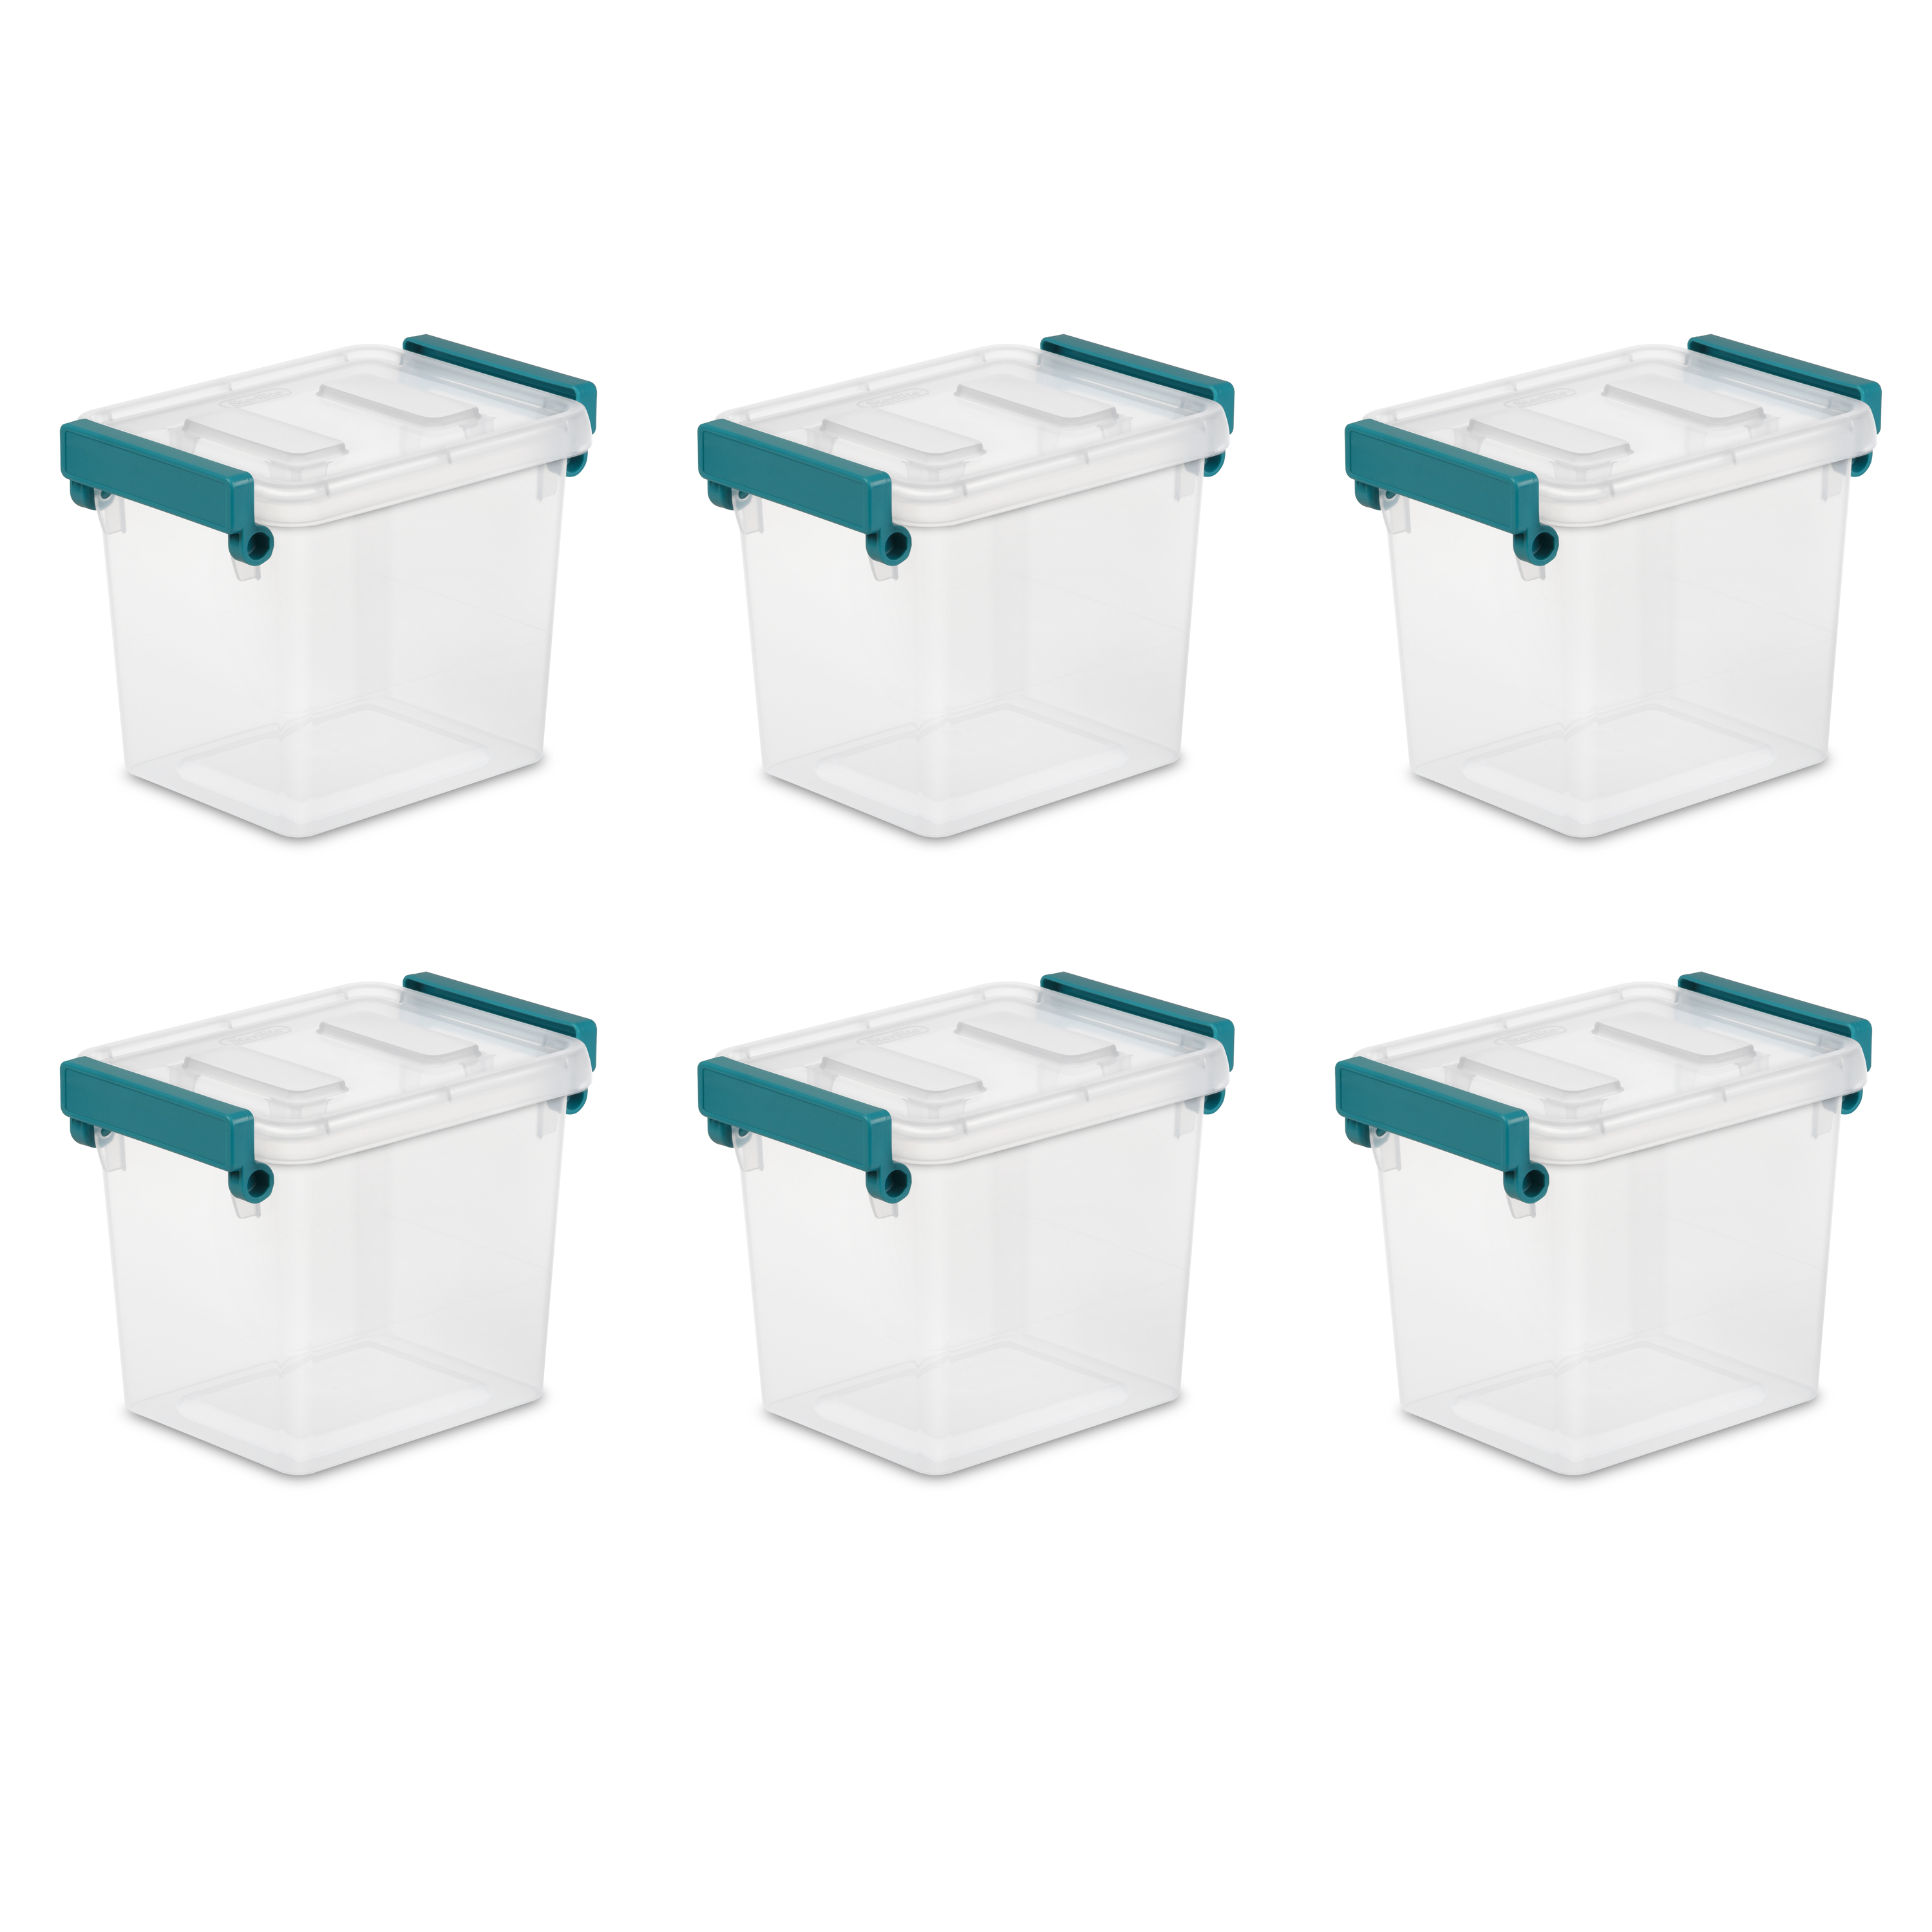 Sterilite, 2.5 Qt./2.4 L Modular Latch Box, Case of 6